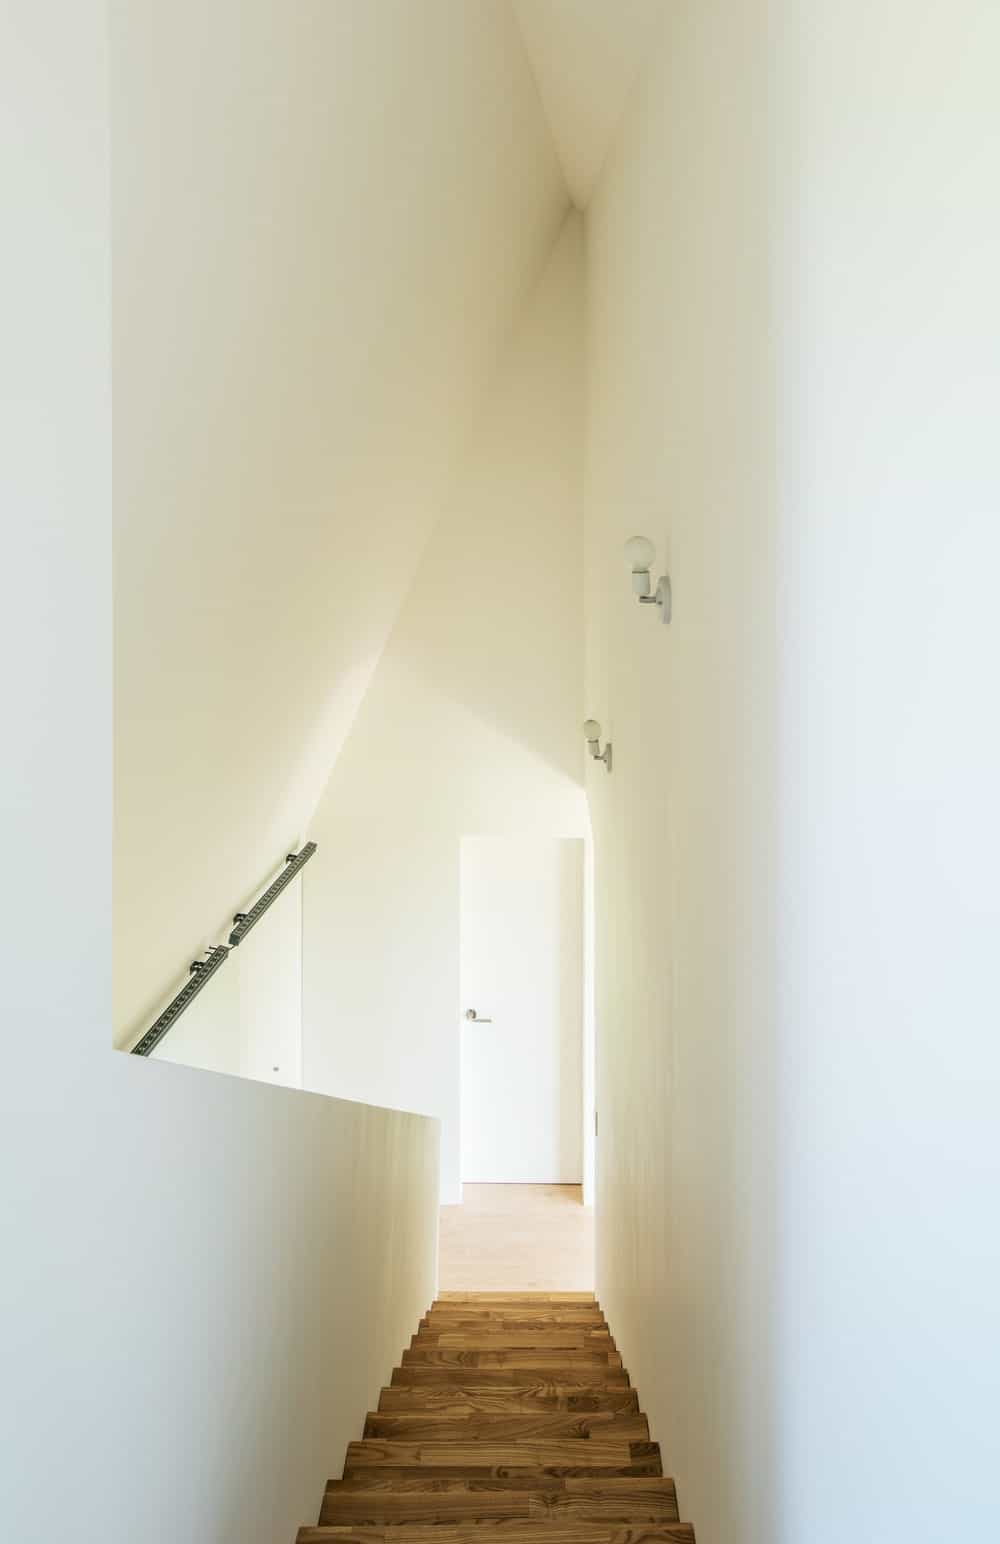 This is a look down the staircase showcasing the tall bright walls over the stairs.